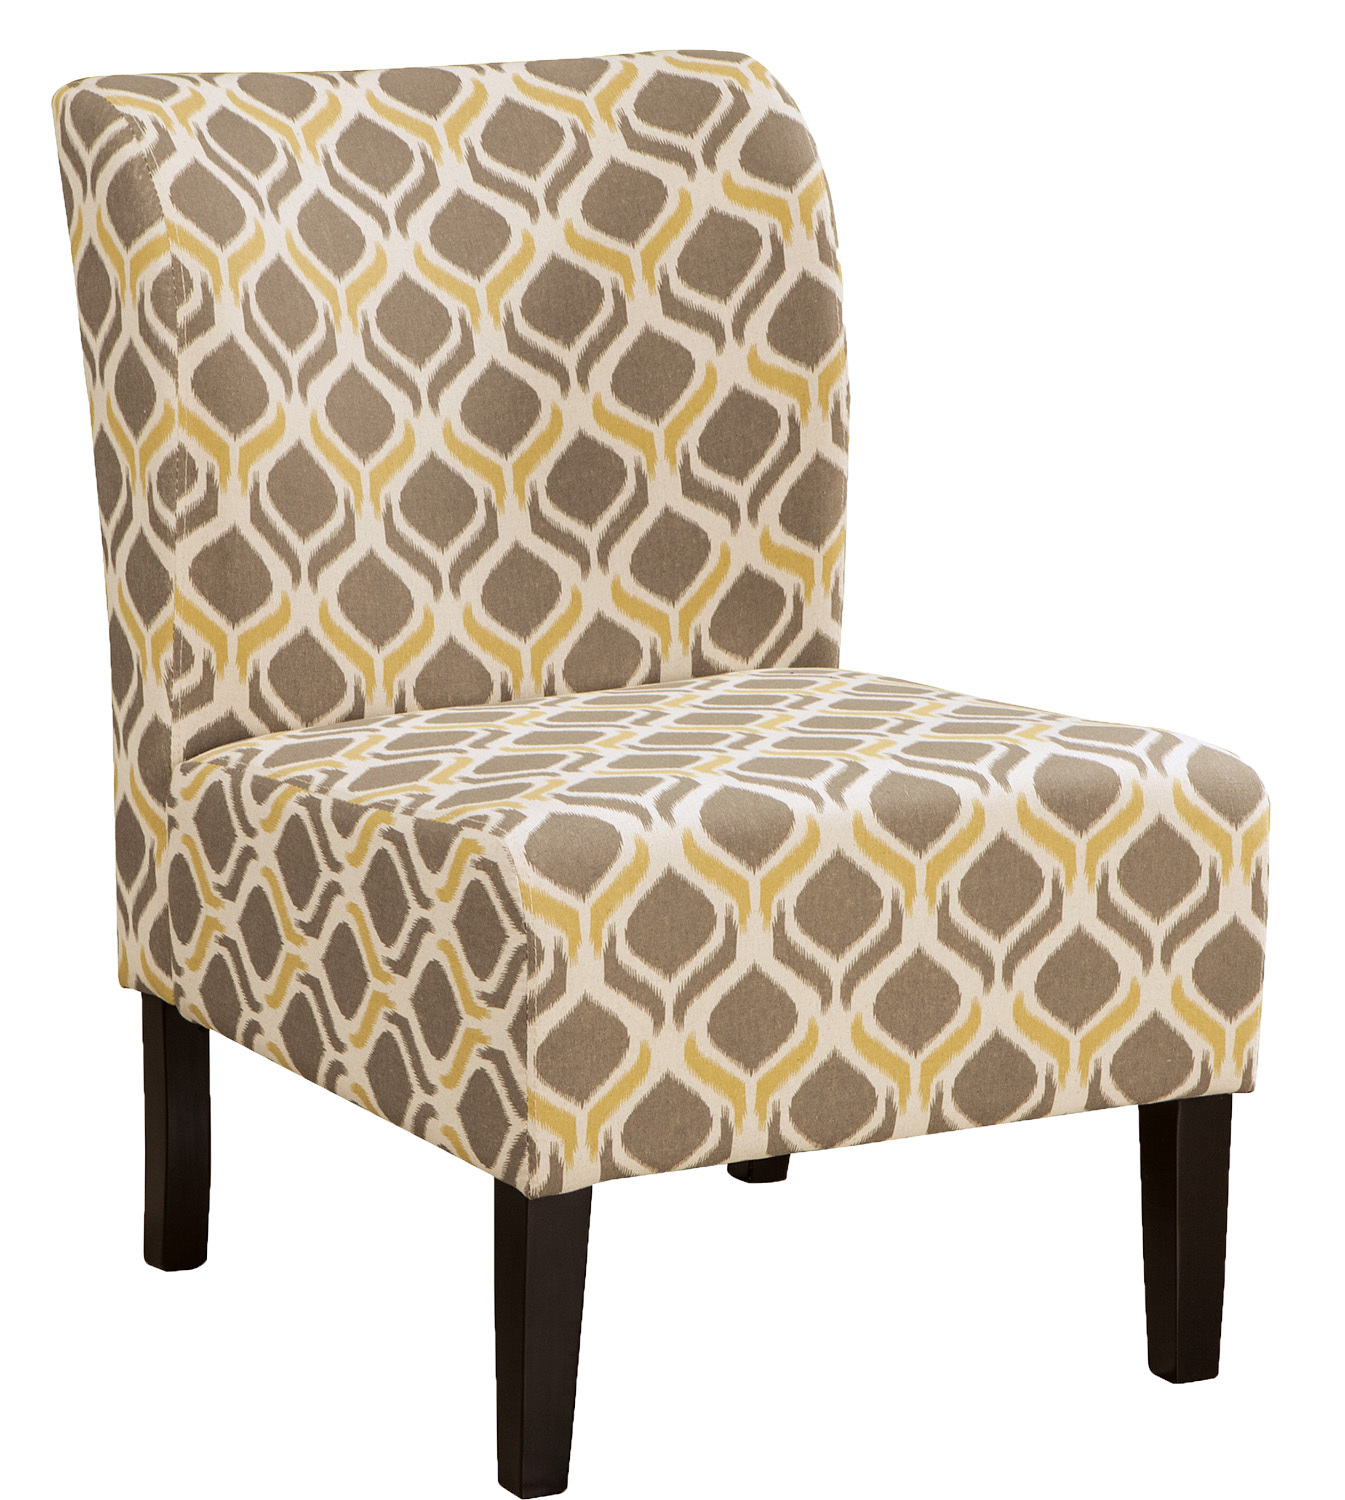 Accent Chair 53305-60-SW.jpg